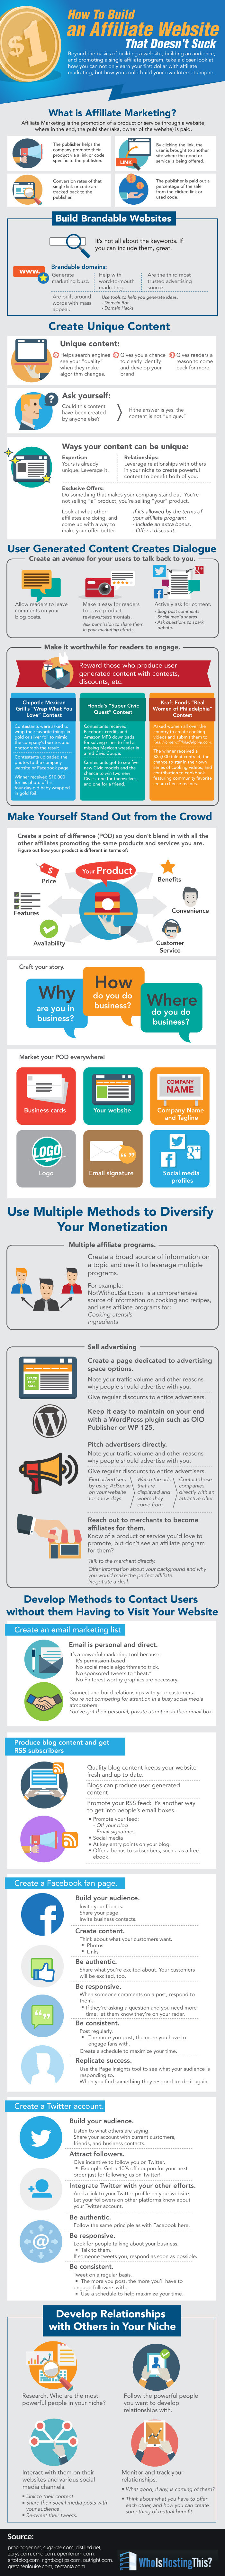 Infographic: How to Build an Affiliate Website That Doesn't Suck #infographic